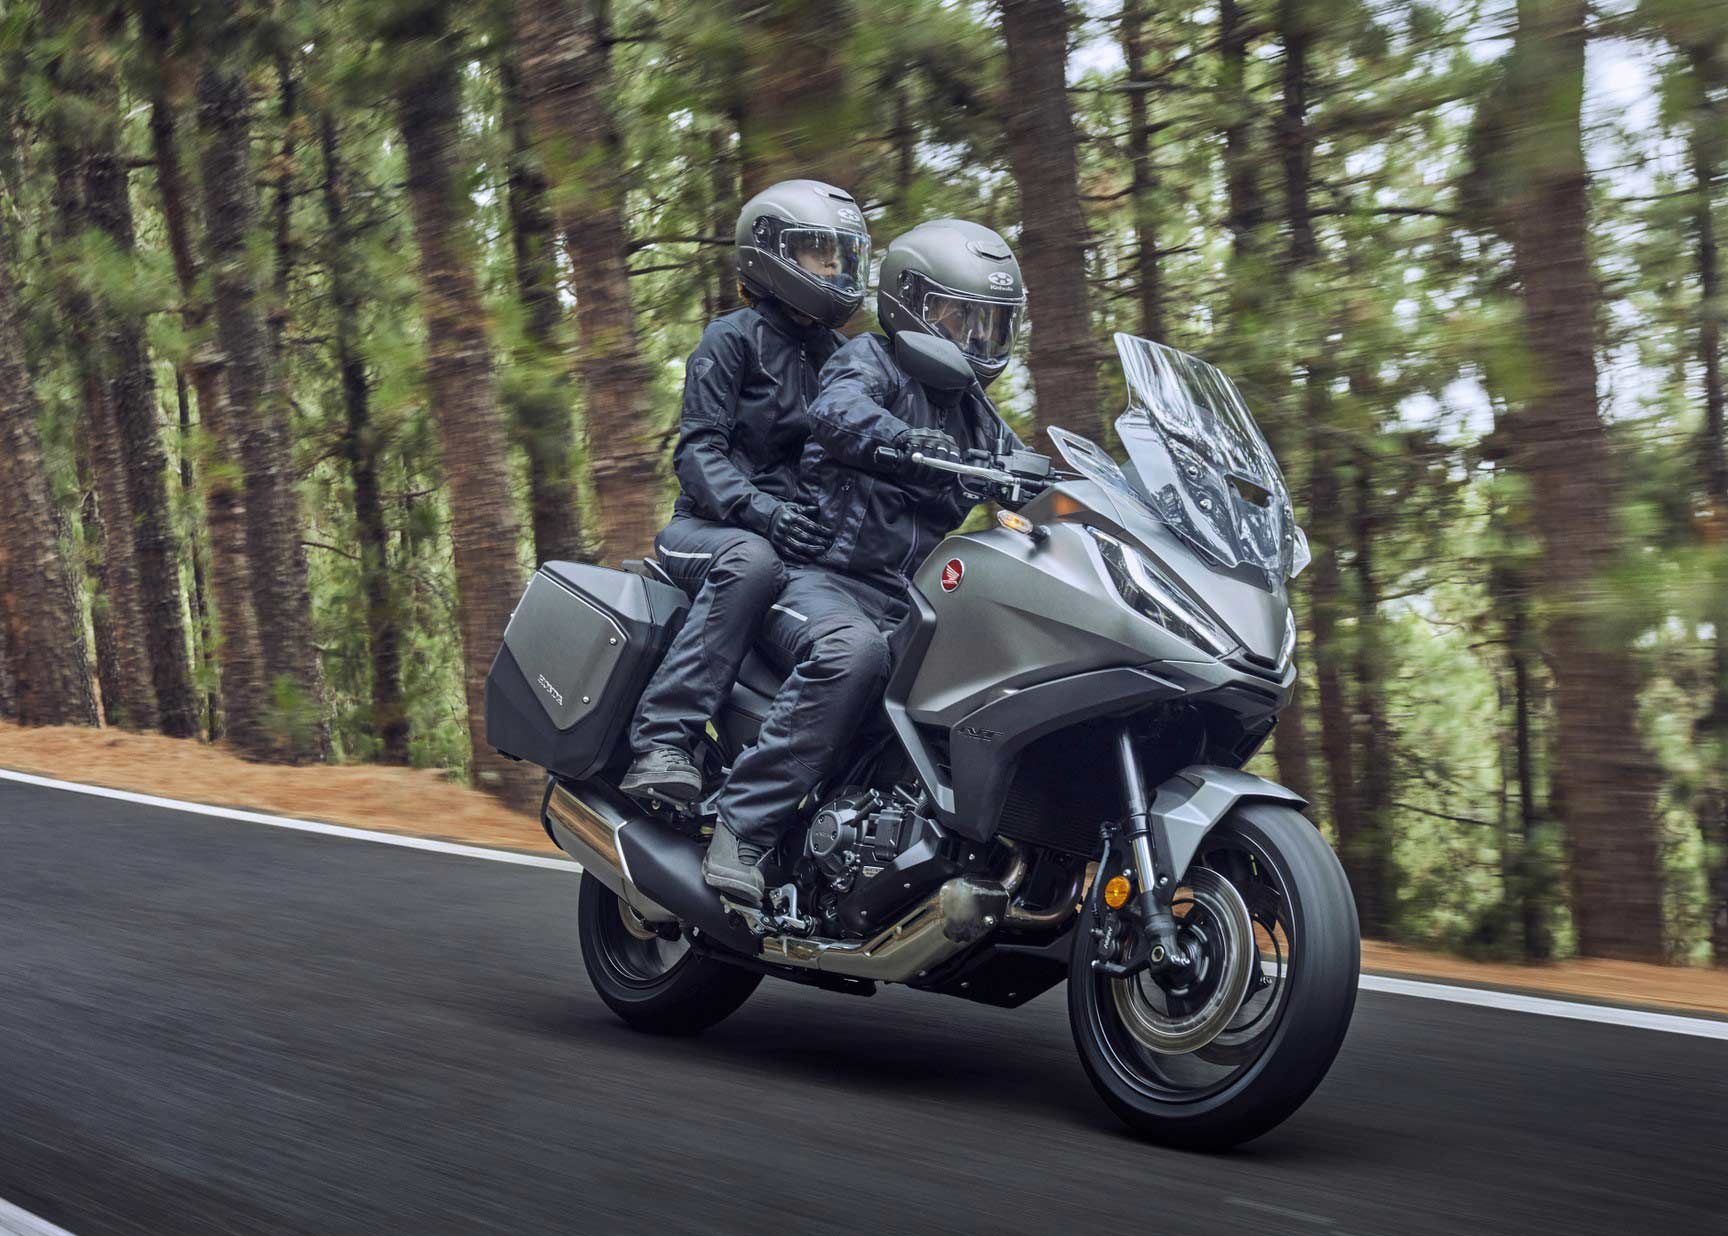 Honda's new NT1100 sport-tourer will come in two flavors and carries over the Africa Twin's steel frame as well as its engine.